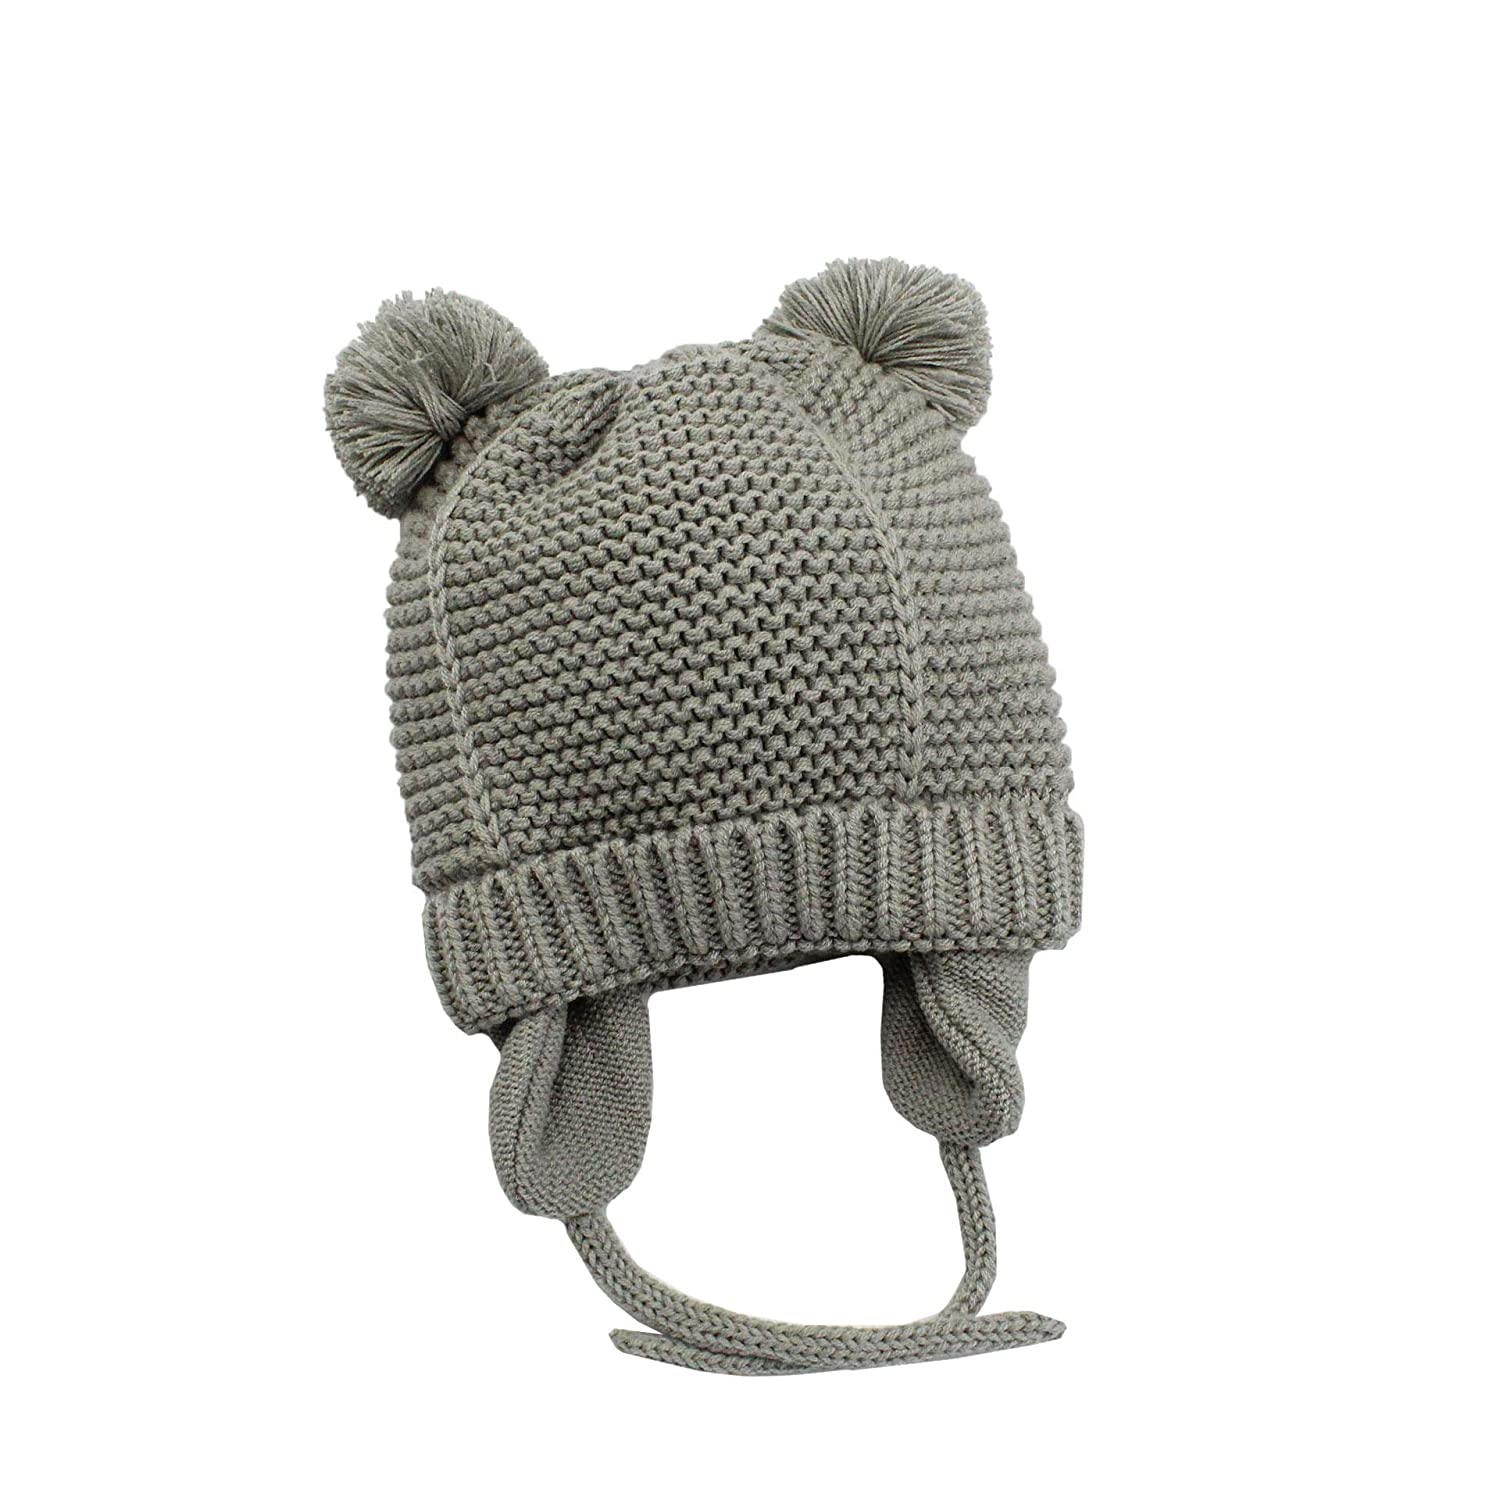 Boomly Baby Newborn Toddler Winter Hats Warm Soft Knitting Crochet Cap Beanie Hat with Animal Ear for Baby Boy Baby Girls